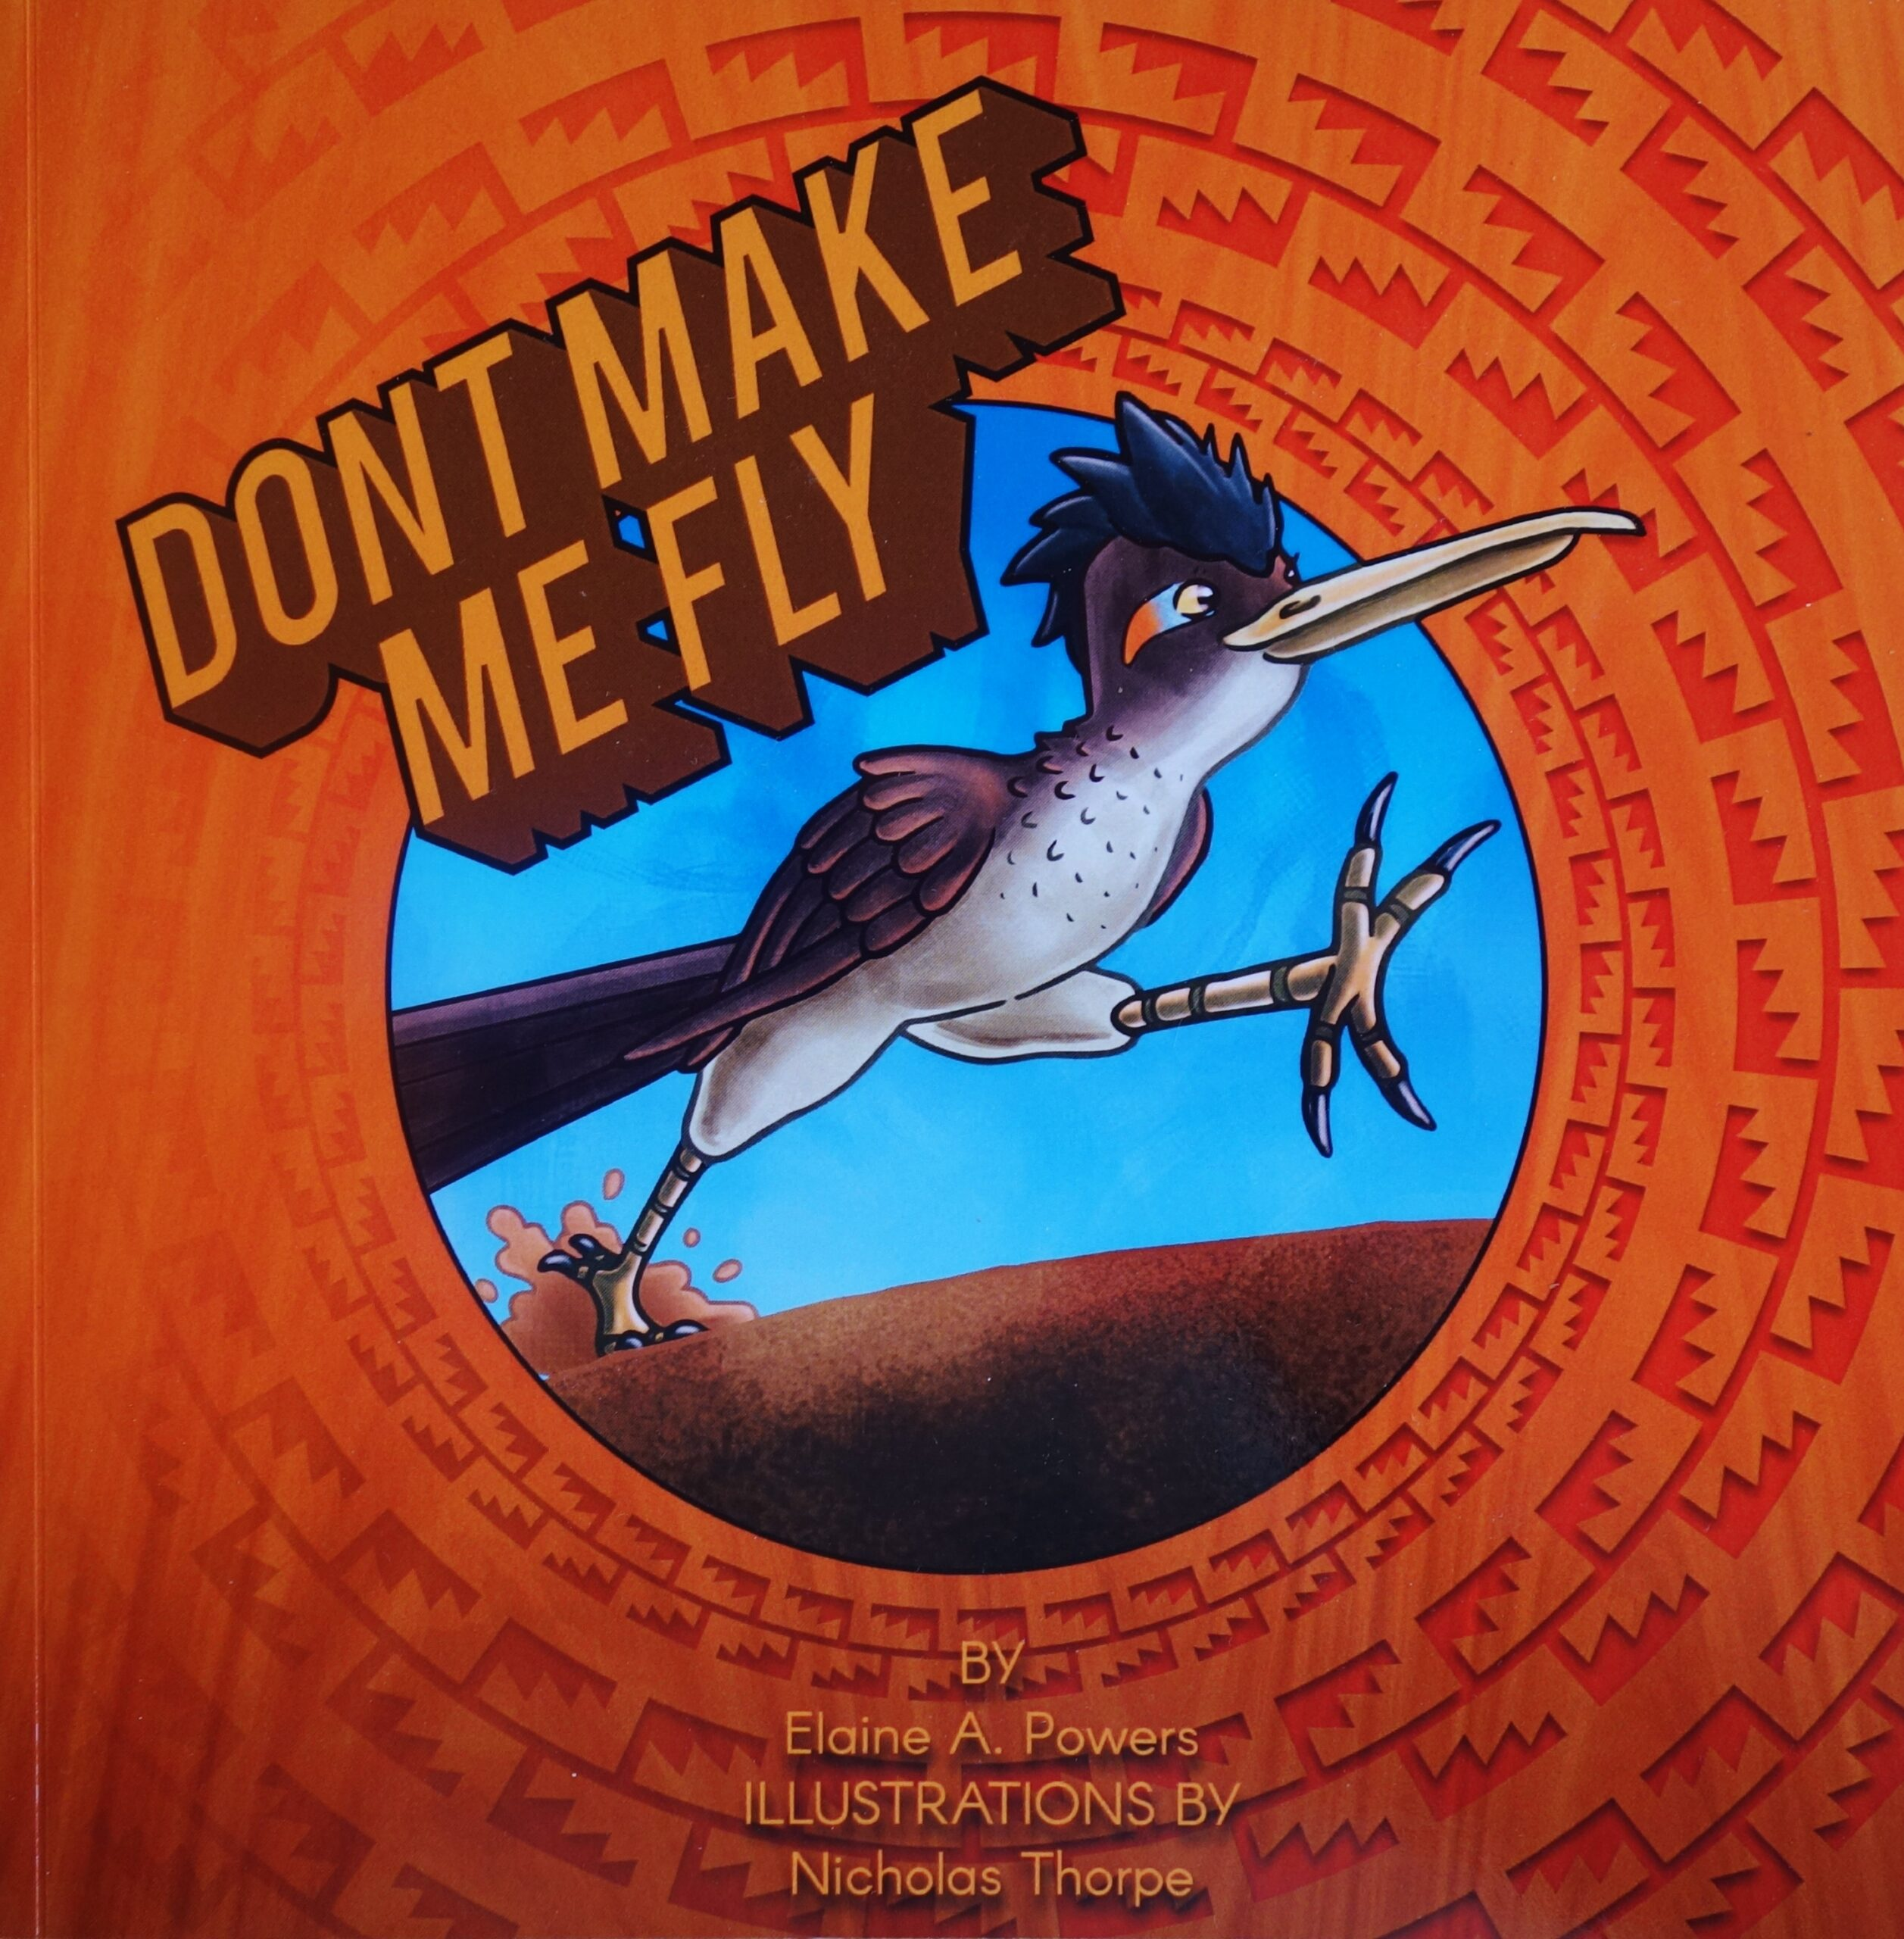 A copper colored book cover featuring an illustration of a Roadrunner bird